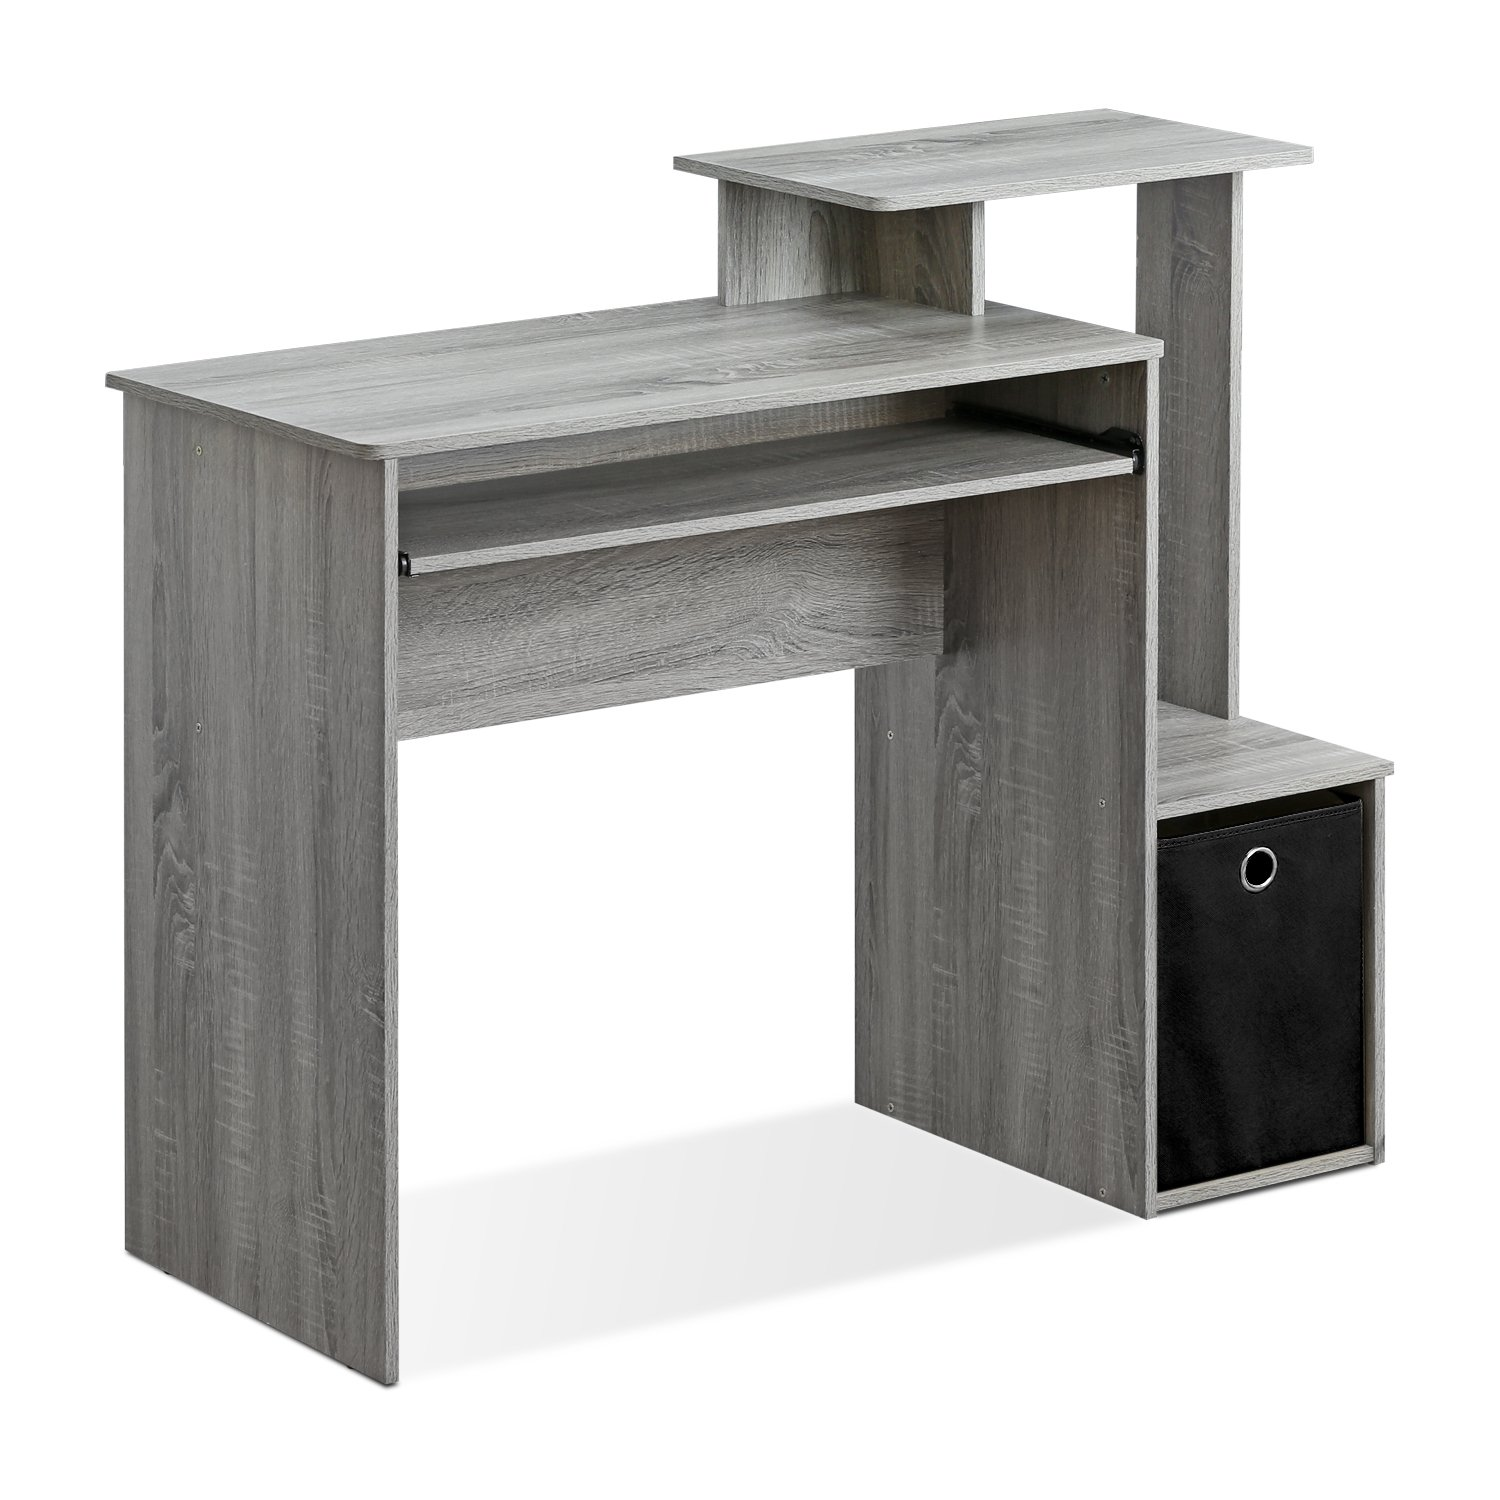 Furinno 12095GYW Econ Multipurpose Home Office Computer Writing Desk with Bin, French Oak Grey, French Oak Grey by Furinno